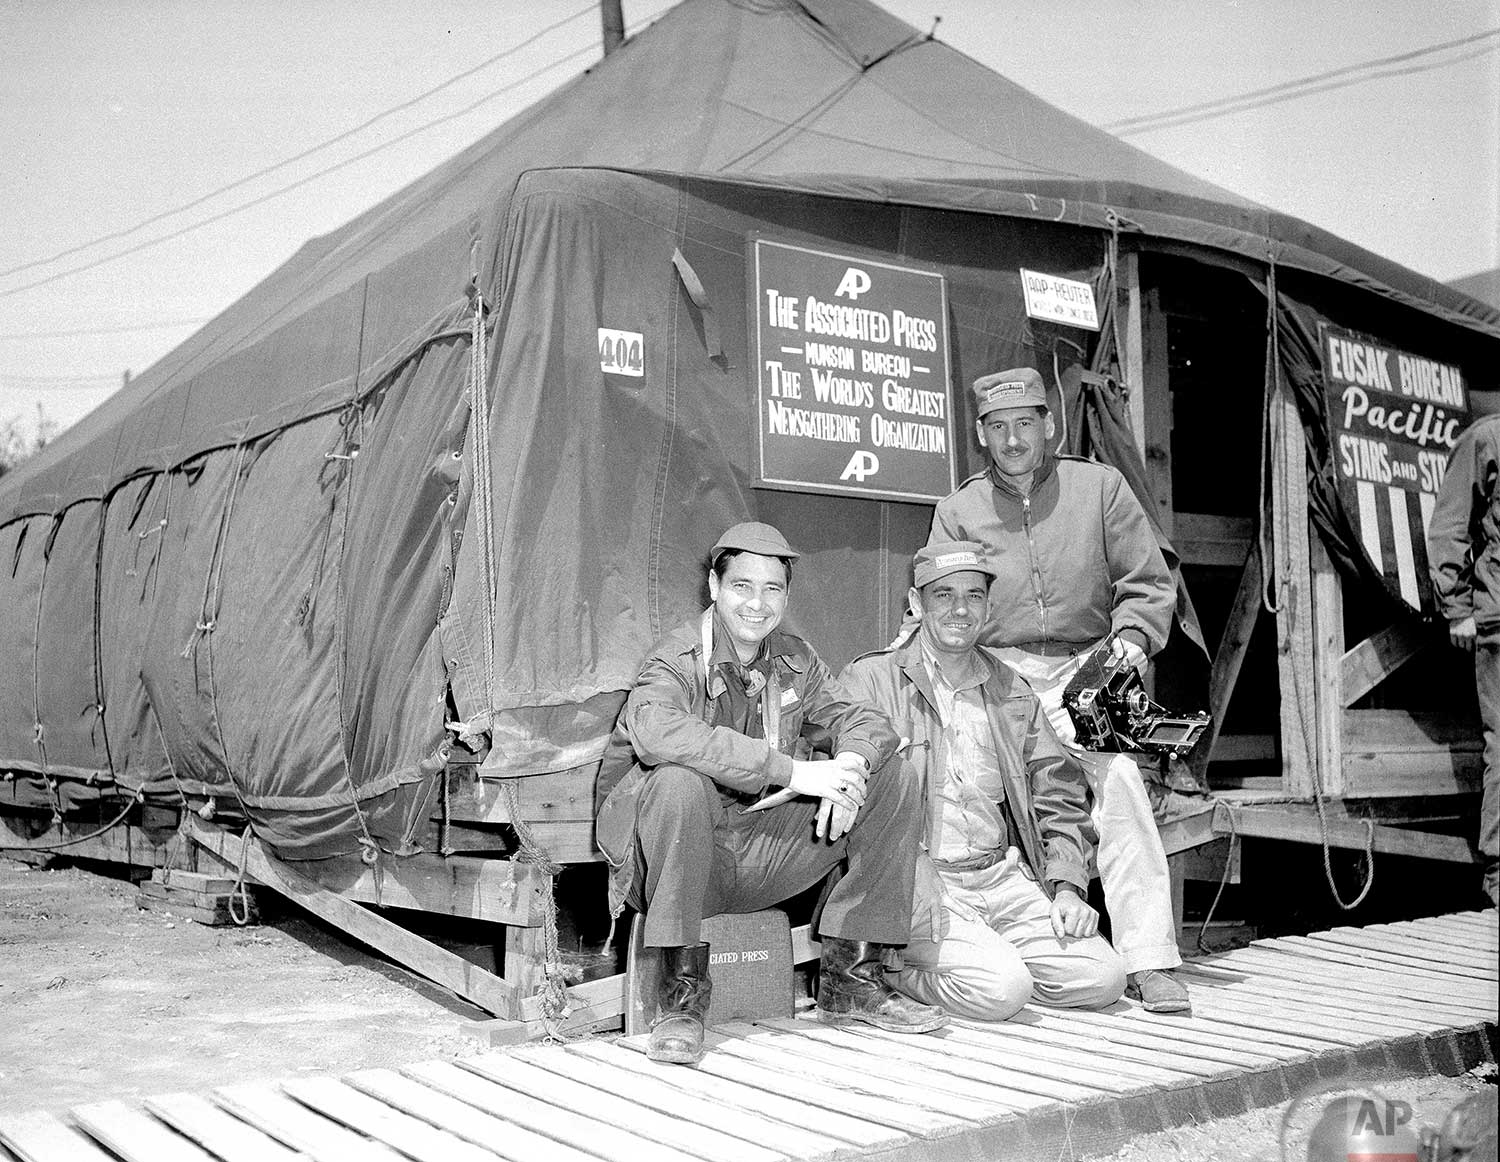 """From left, AP staffers George McArthur, Bill Waugh and Max Desfor sit together outside the new AP press tent at Munsan, Korea, after moving from the train which had been """"home"""" to correspondents since the start of the truce talks. The sign says: The Associated Press, Munsan Bureau, The World's Greatest Newsgathering Organization. (AP Photo)"""